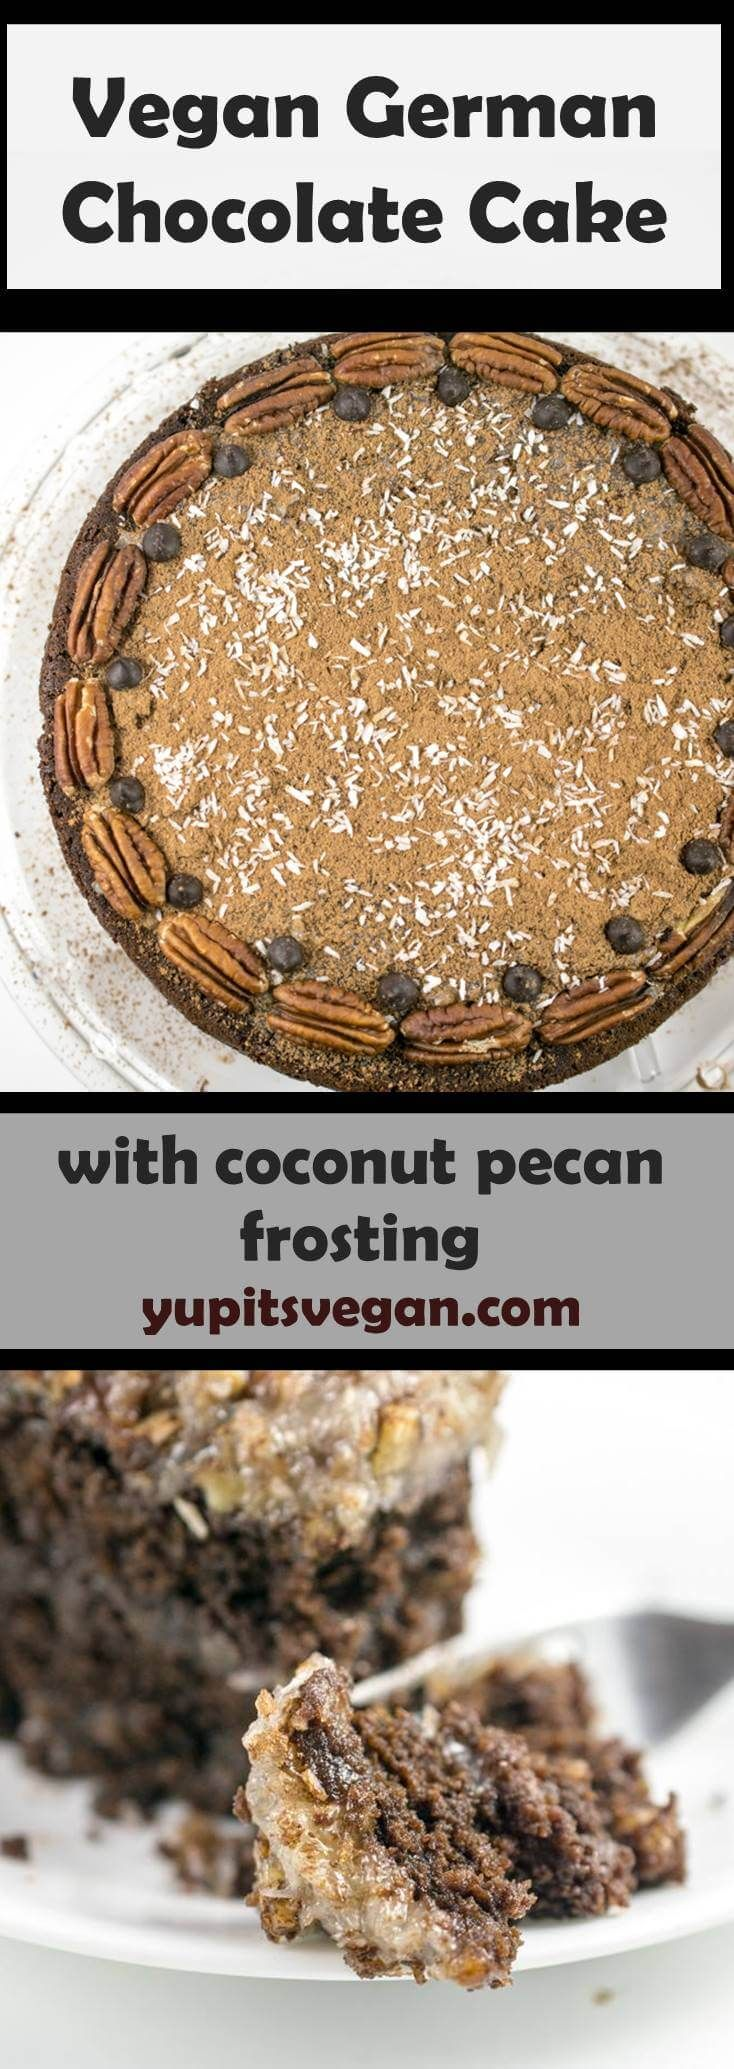 Vegan German Chocolate Cake: Fluffy layers of egg-free, dairy-free chocolate cake, topped with decadent toasted coconut pecan custard frosting. #germanchocolatecheesecake